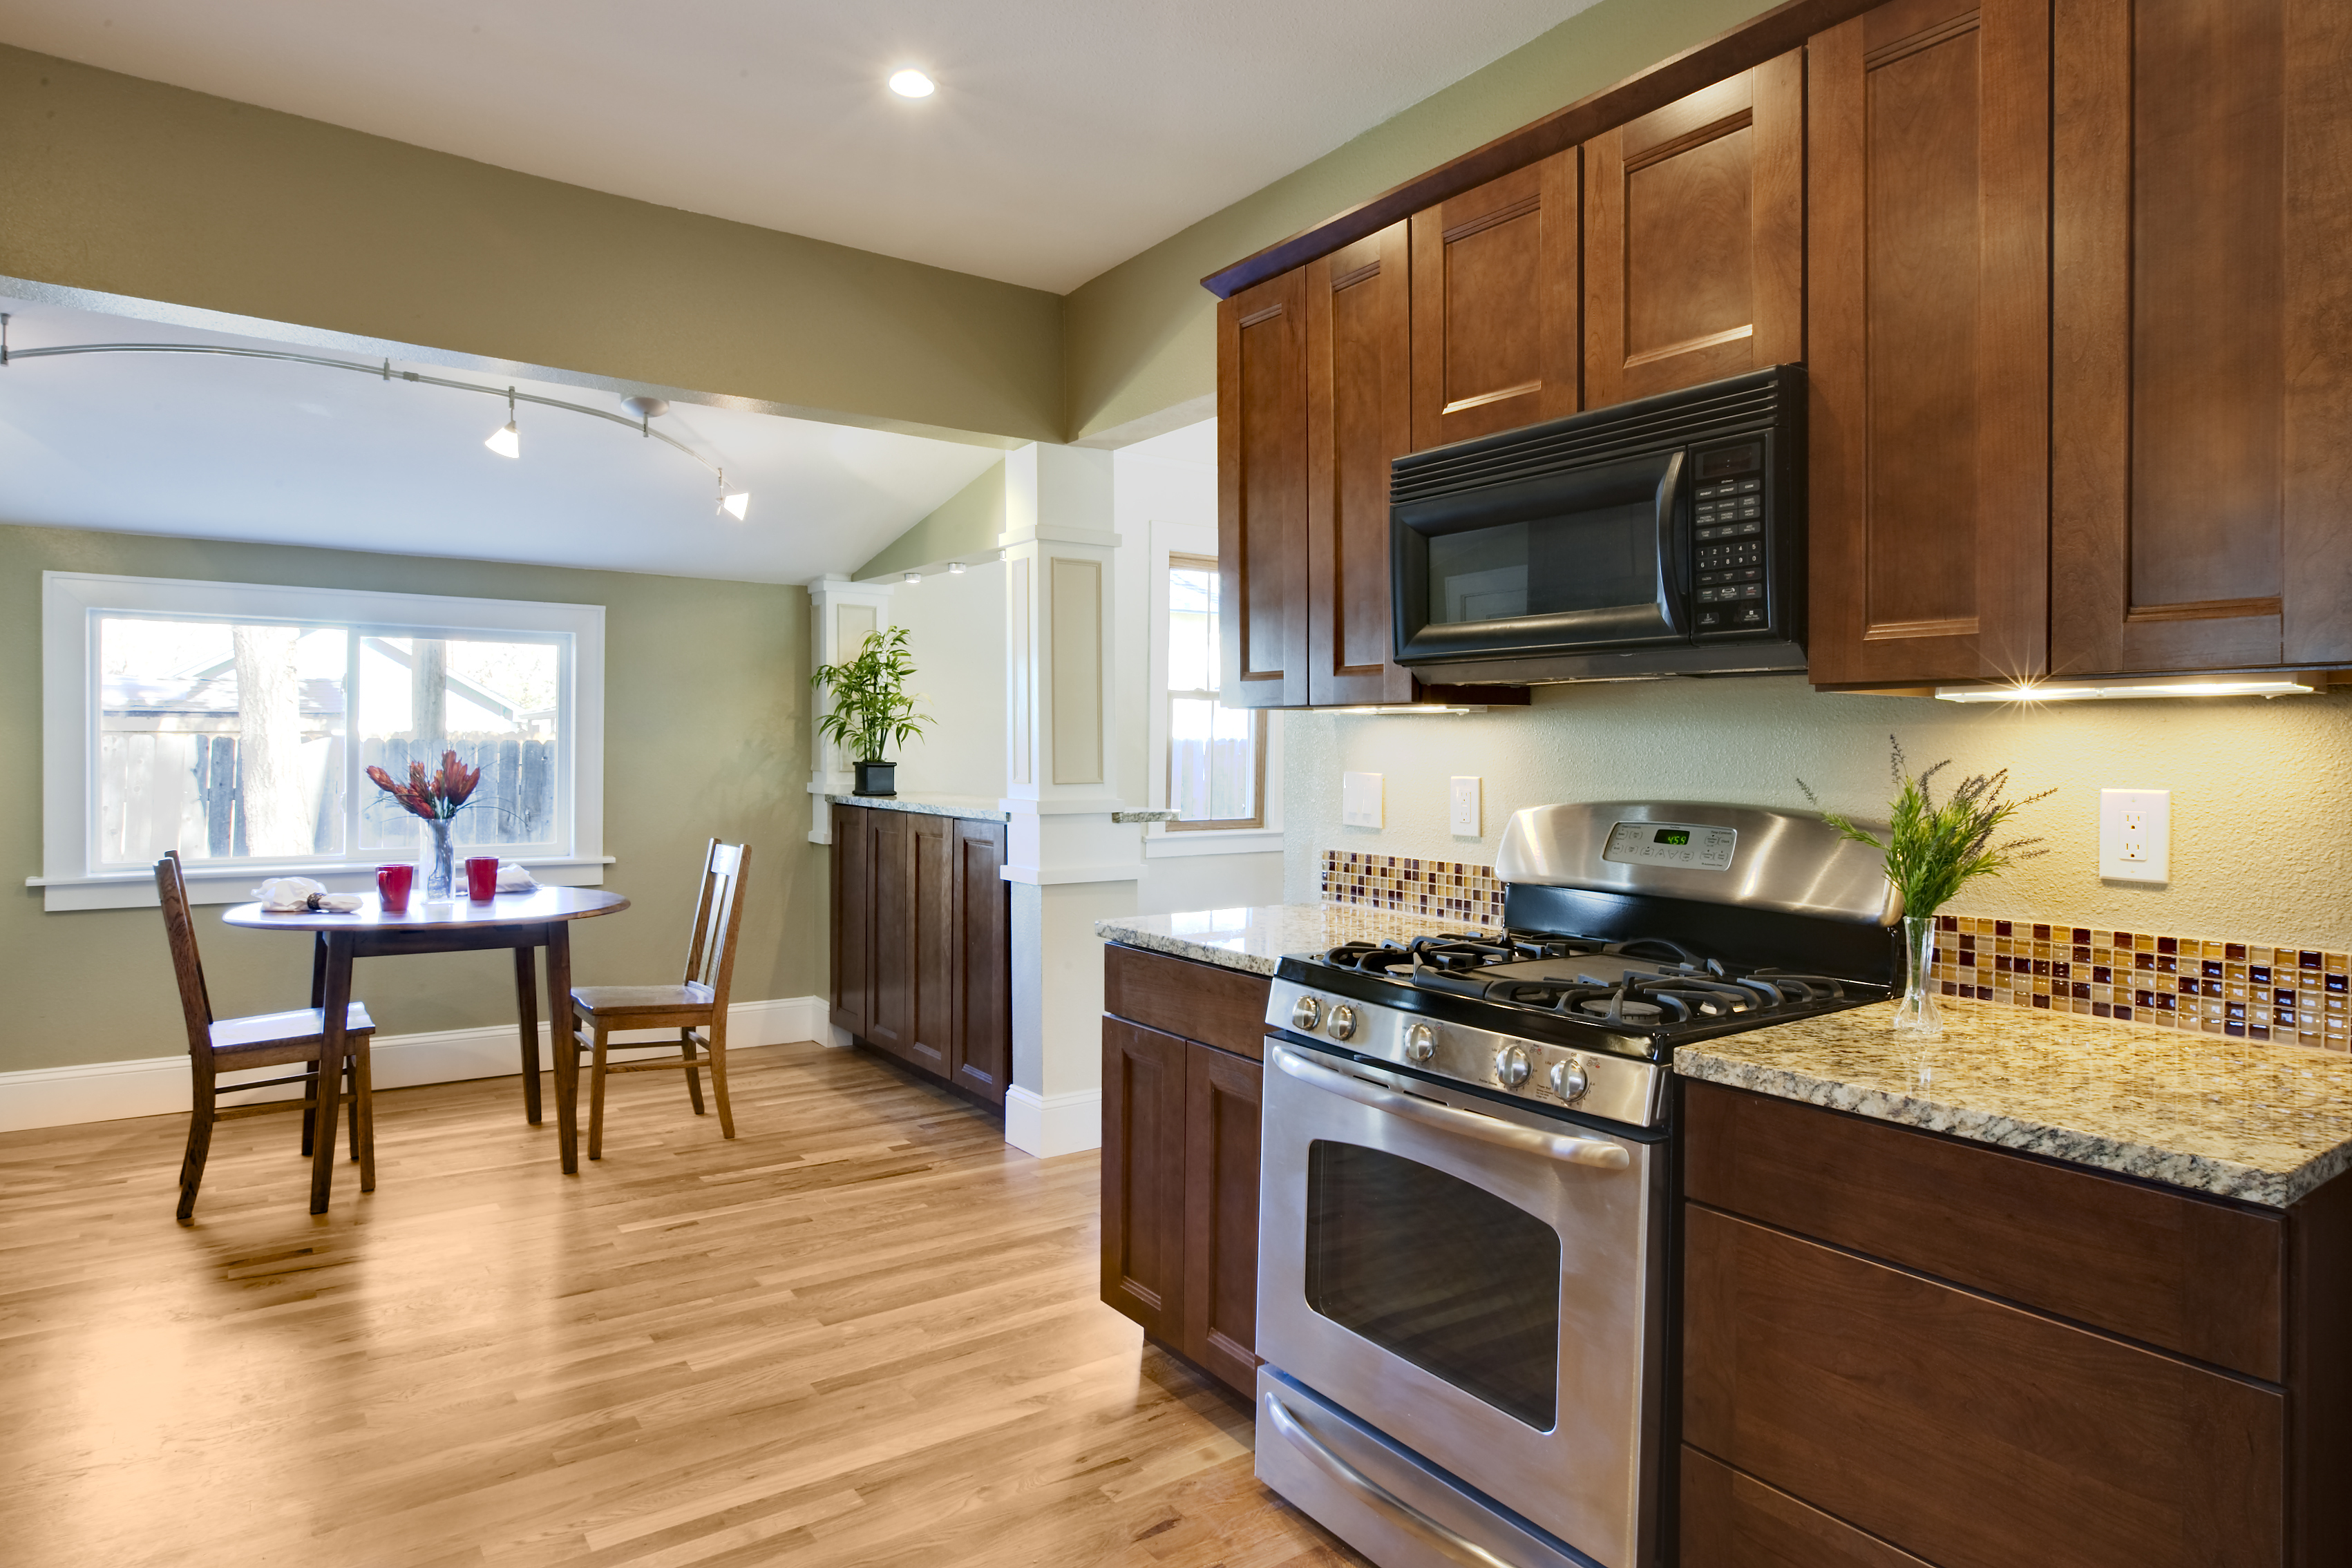 Kitchen Renovation Costs Kitchen Remodeling Cost Unique